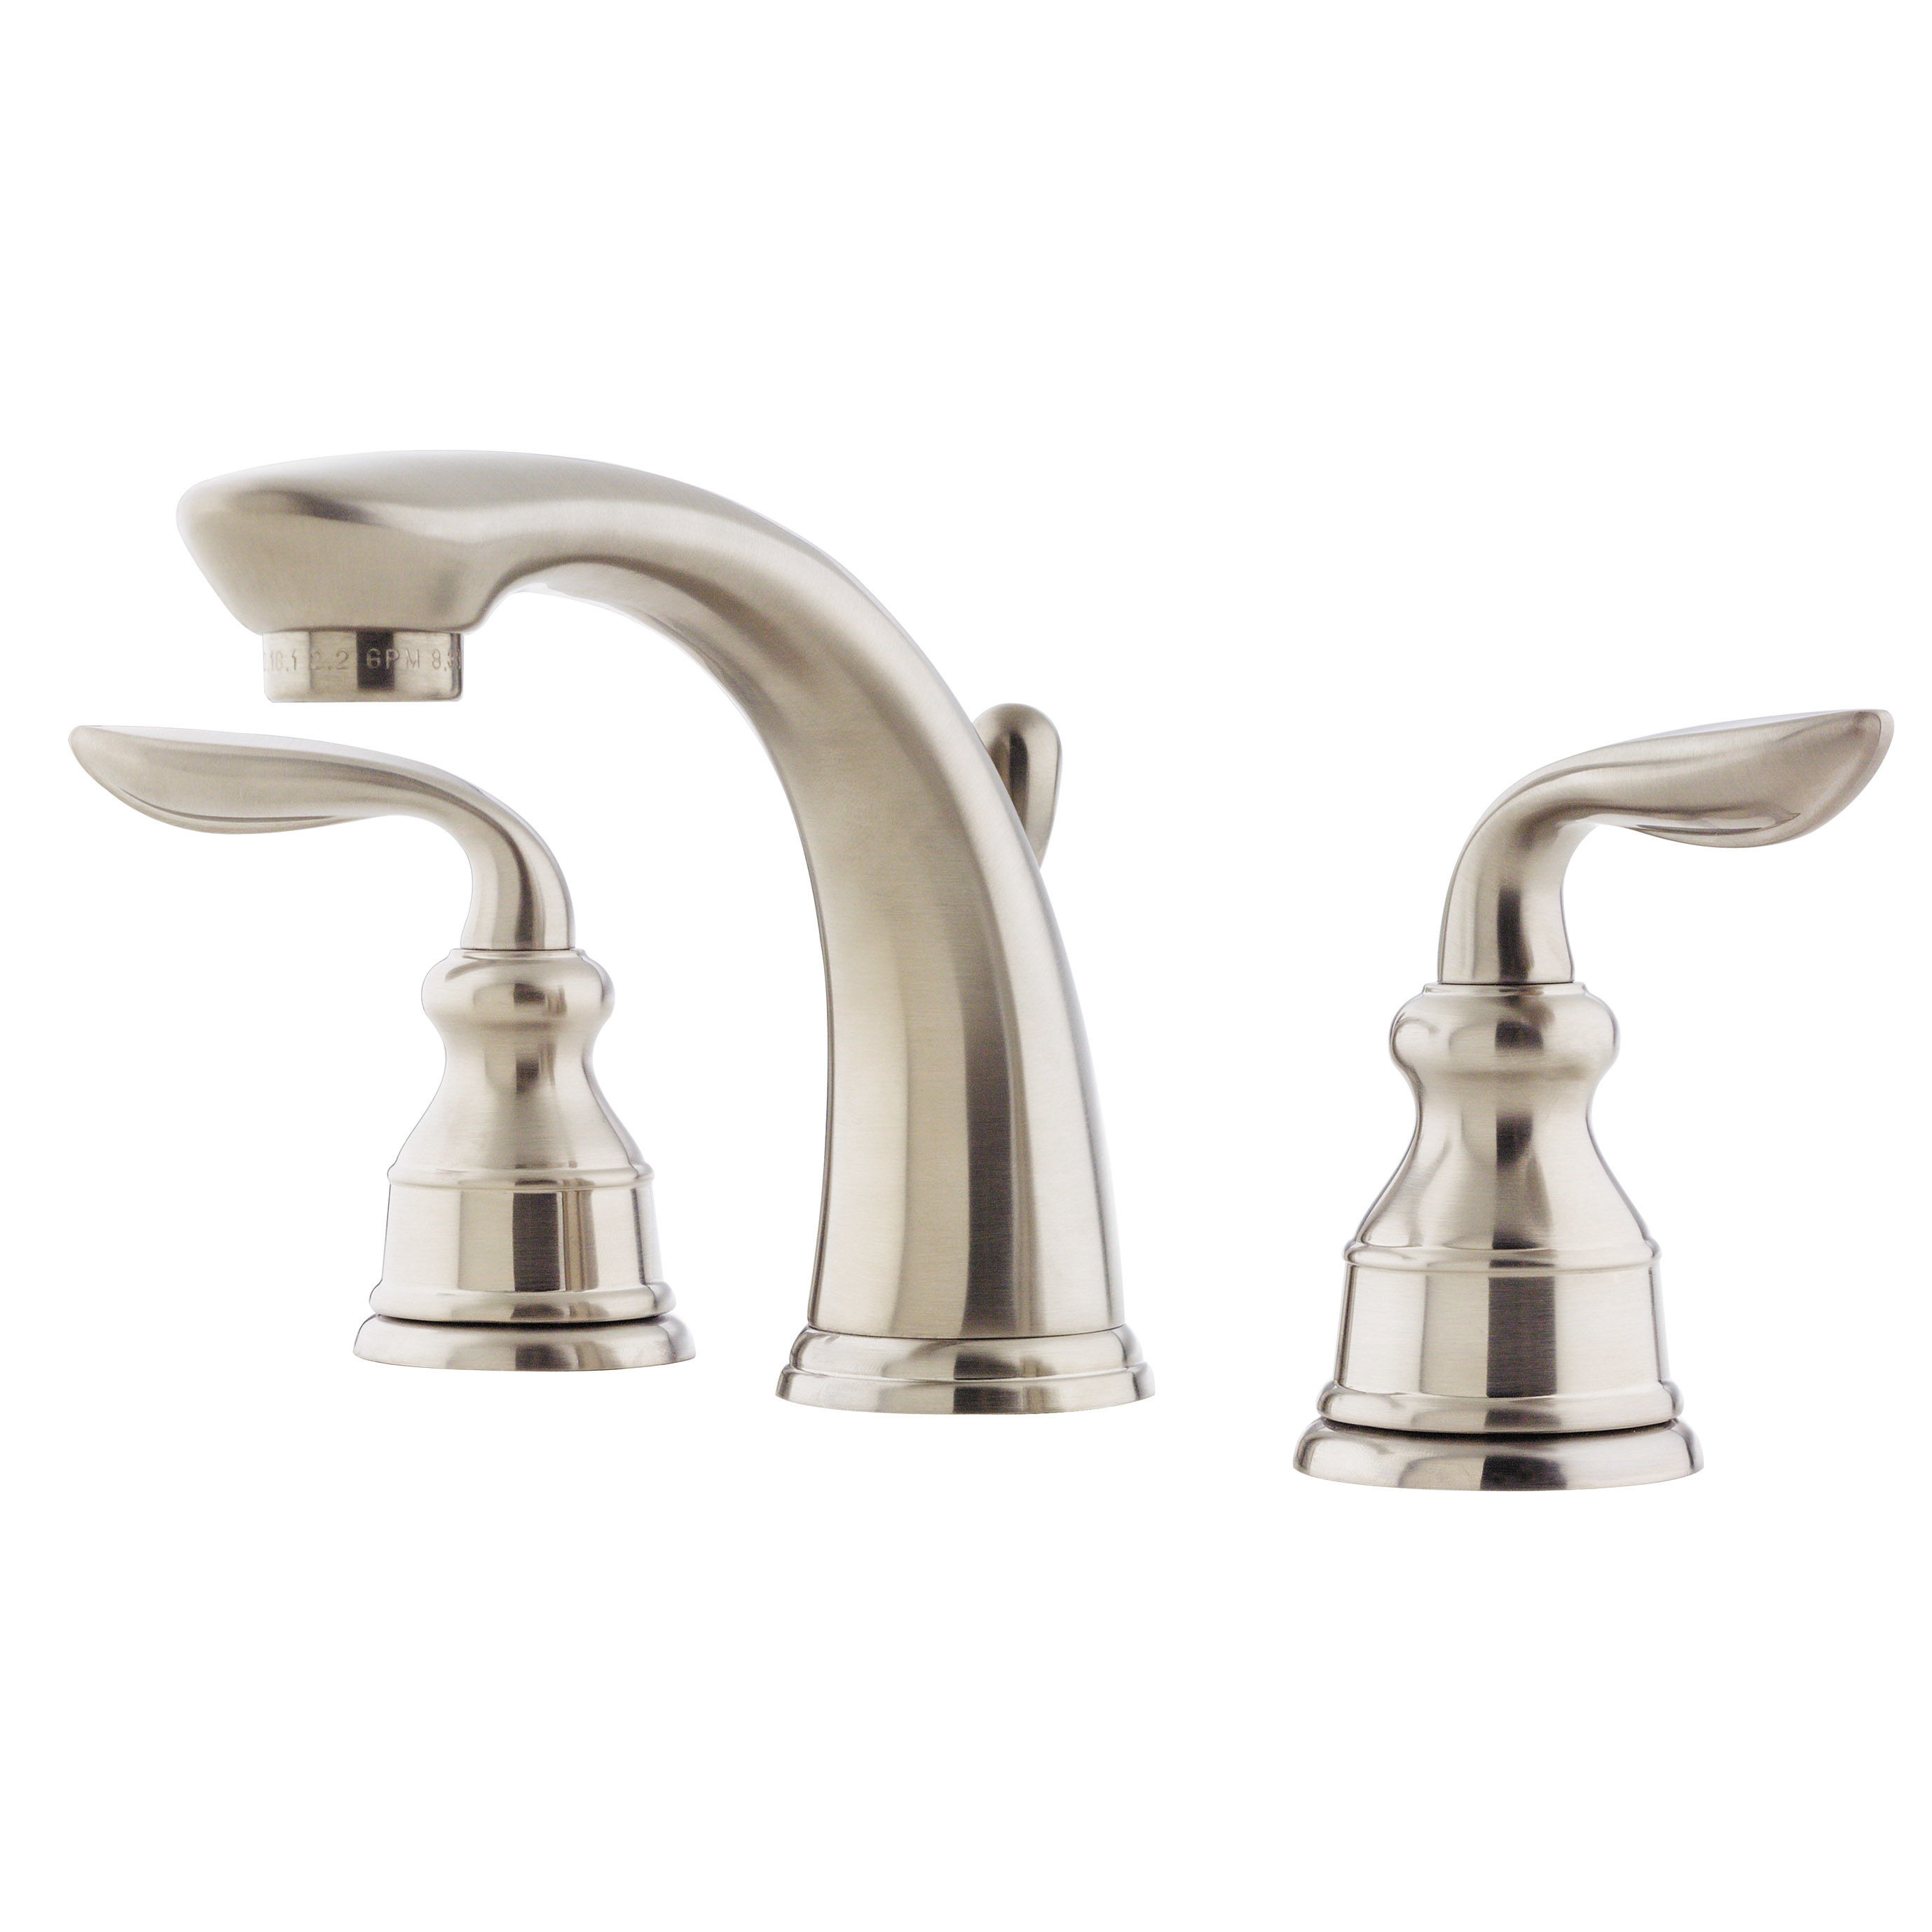 Pfister LF 049 CB0K Brushed Nickel Avalon 1.2 GPM Widespread Bathroom Sink  Faucet With Metal Pop Up Assembly   Faucet.com